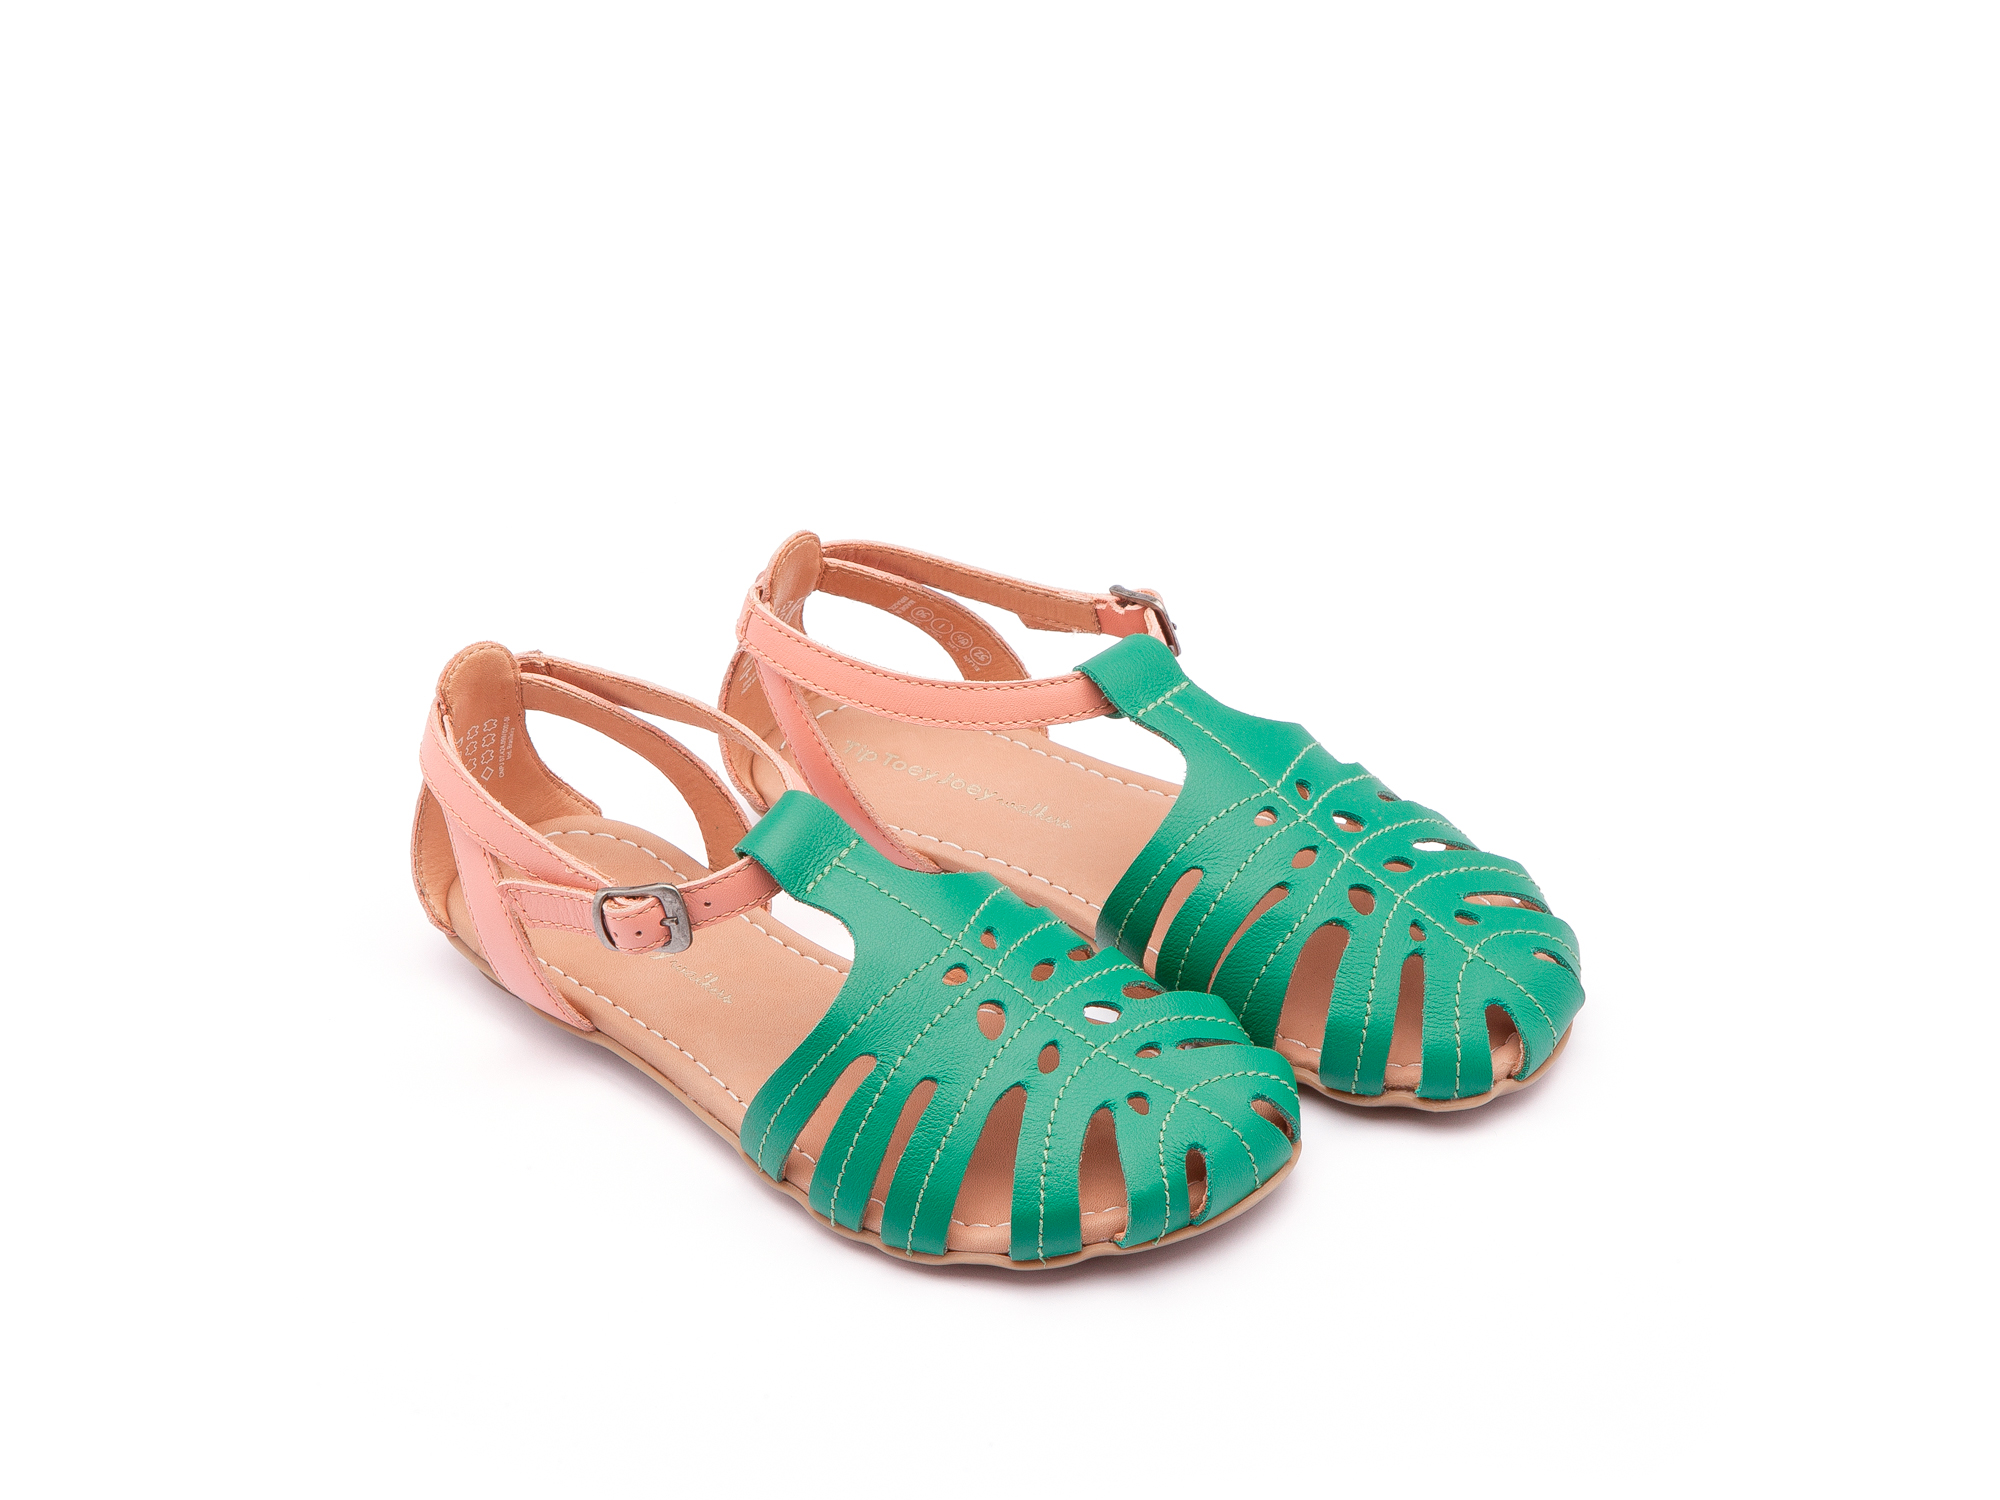 Sandália Tropical Green Leaf/ Flamingo Junior 4 à 8 anos - 0